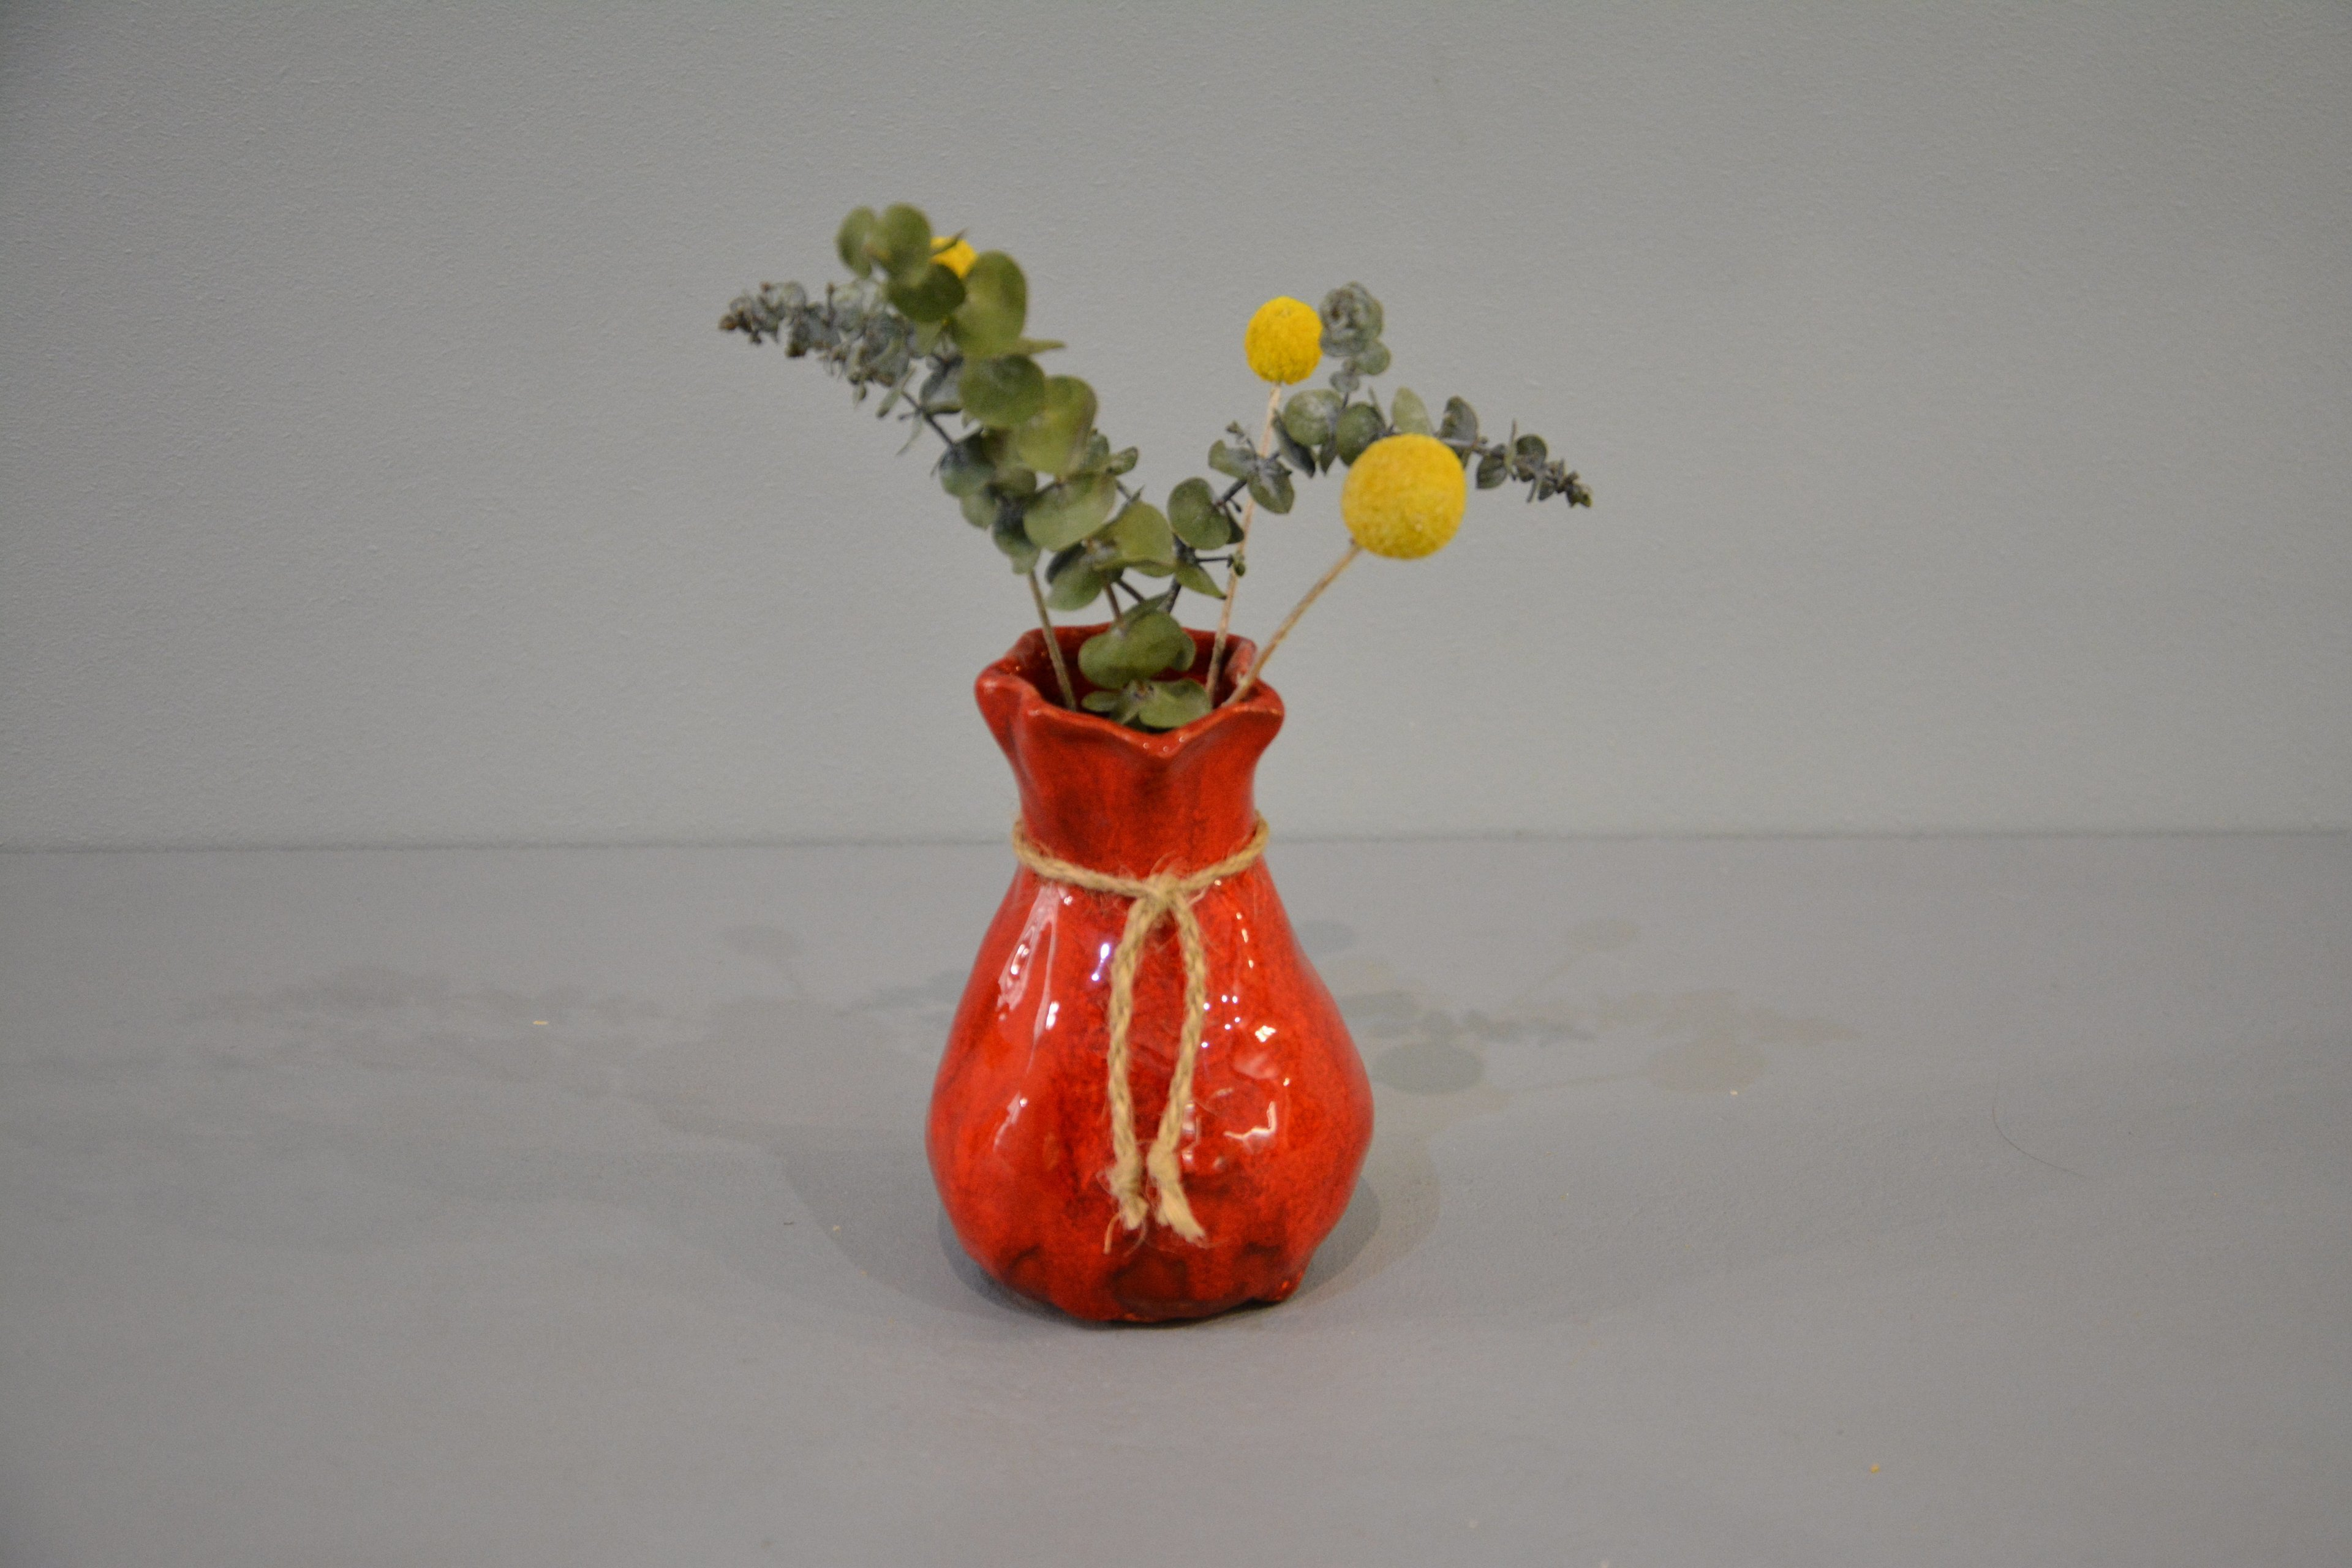 Small Vase or flowers «Red Bagful», height - 12 cm, color - red. Photo 1426.